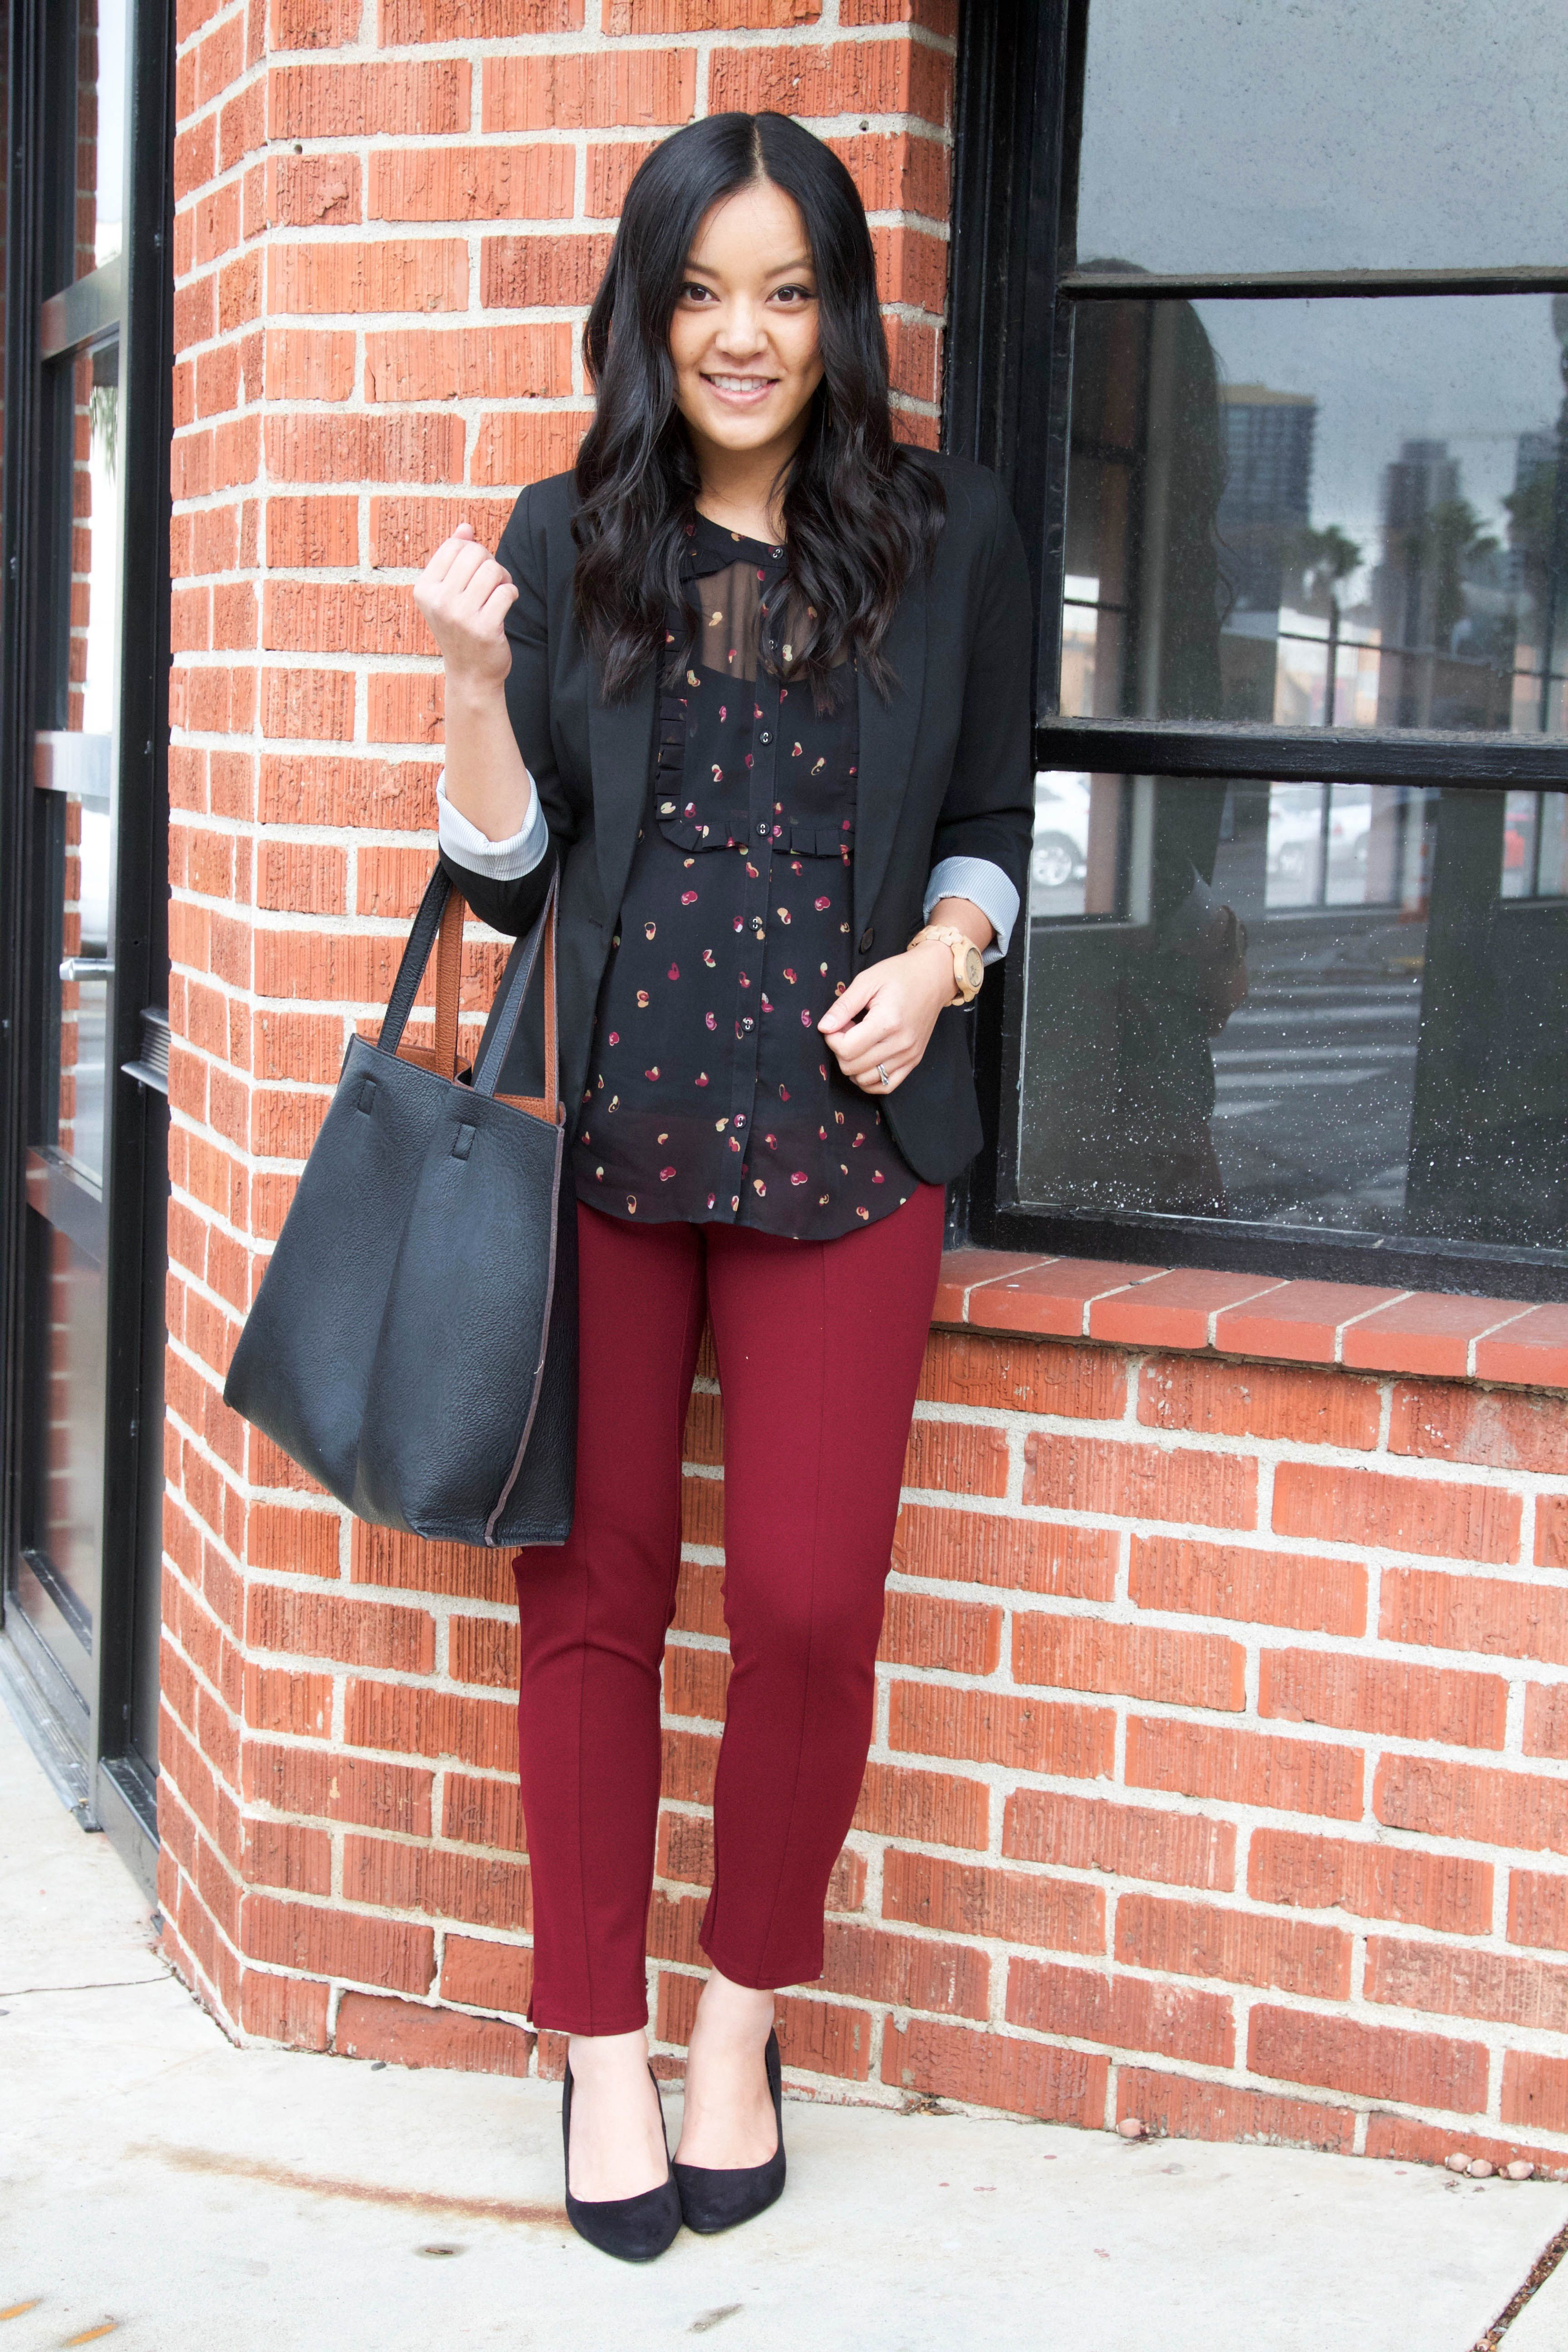 Zwangerschapskleding Tips.4 Tips For Finding And Styling Tops For Business Casual And Play